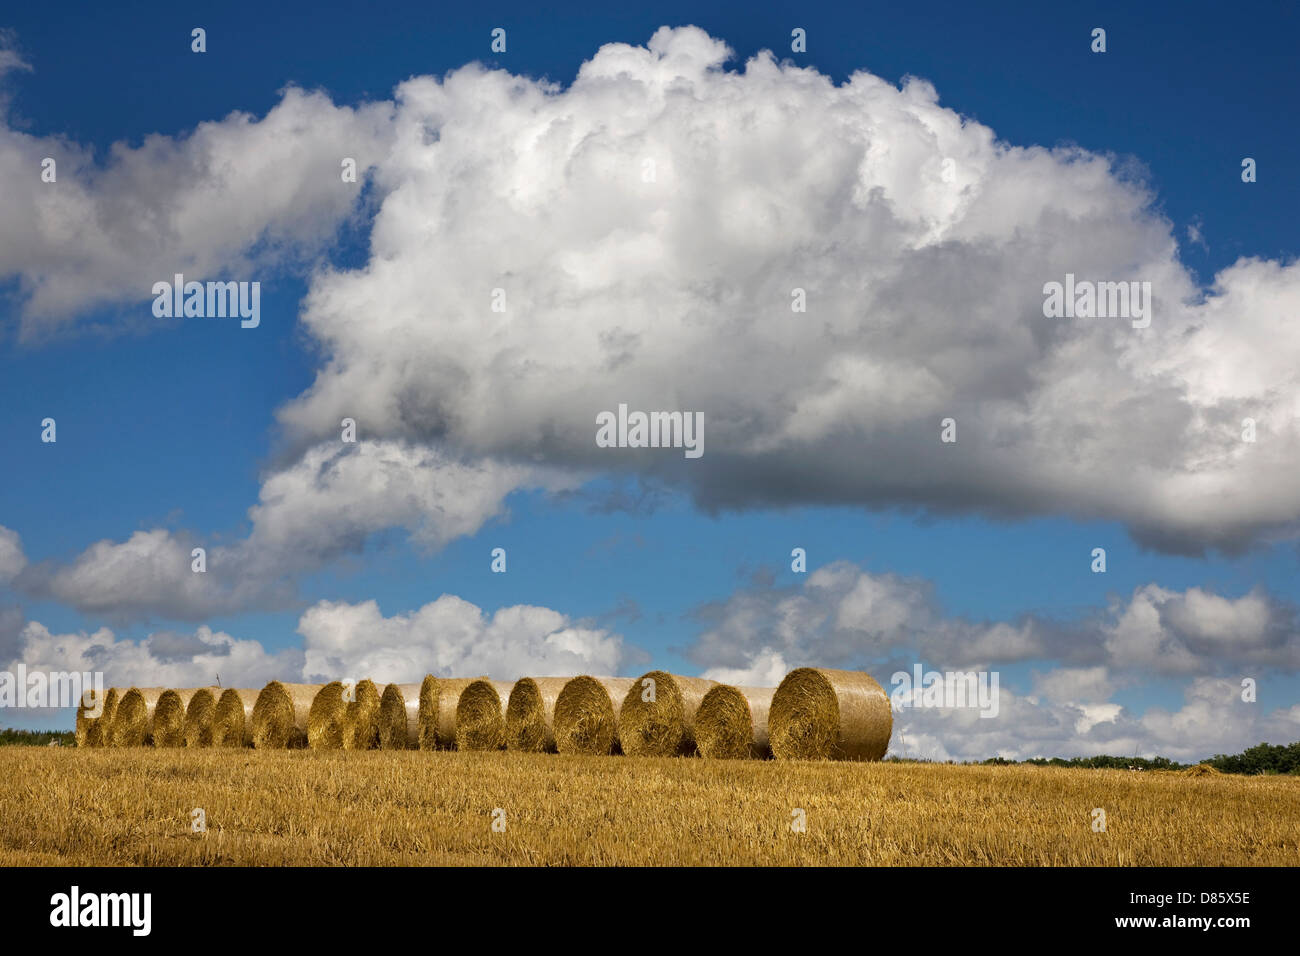 Cumulus mediocris clouds over field with round hay bales - Stock Image